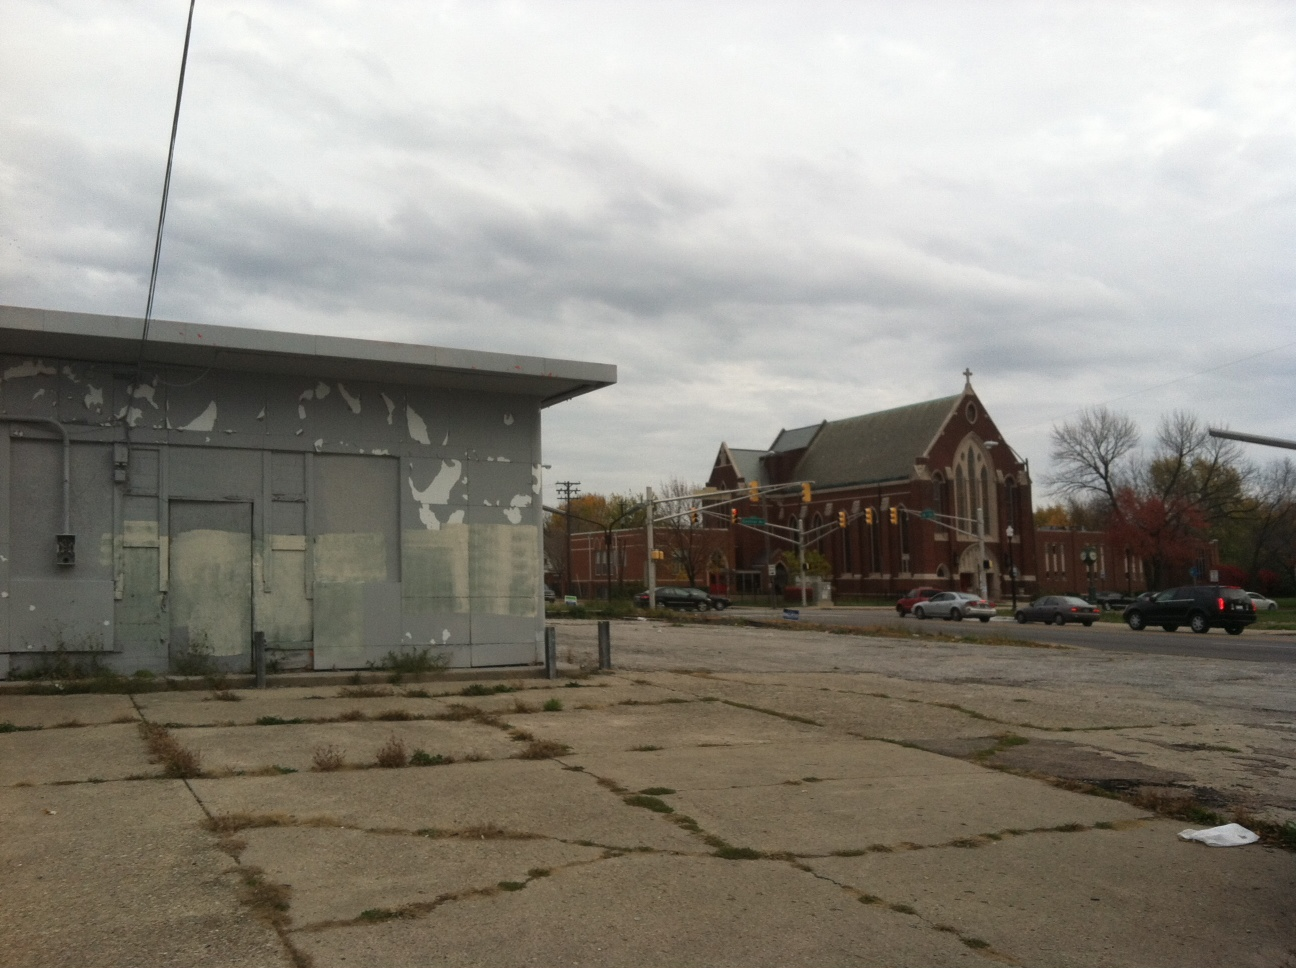 WTH? Check out that beautiful Historic Neighborhood… gas station?